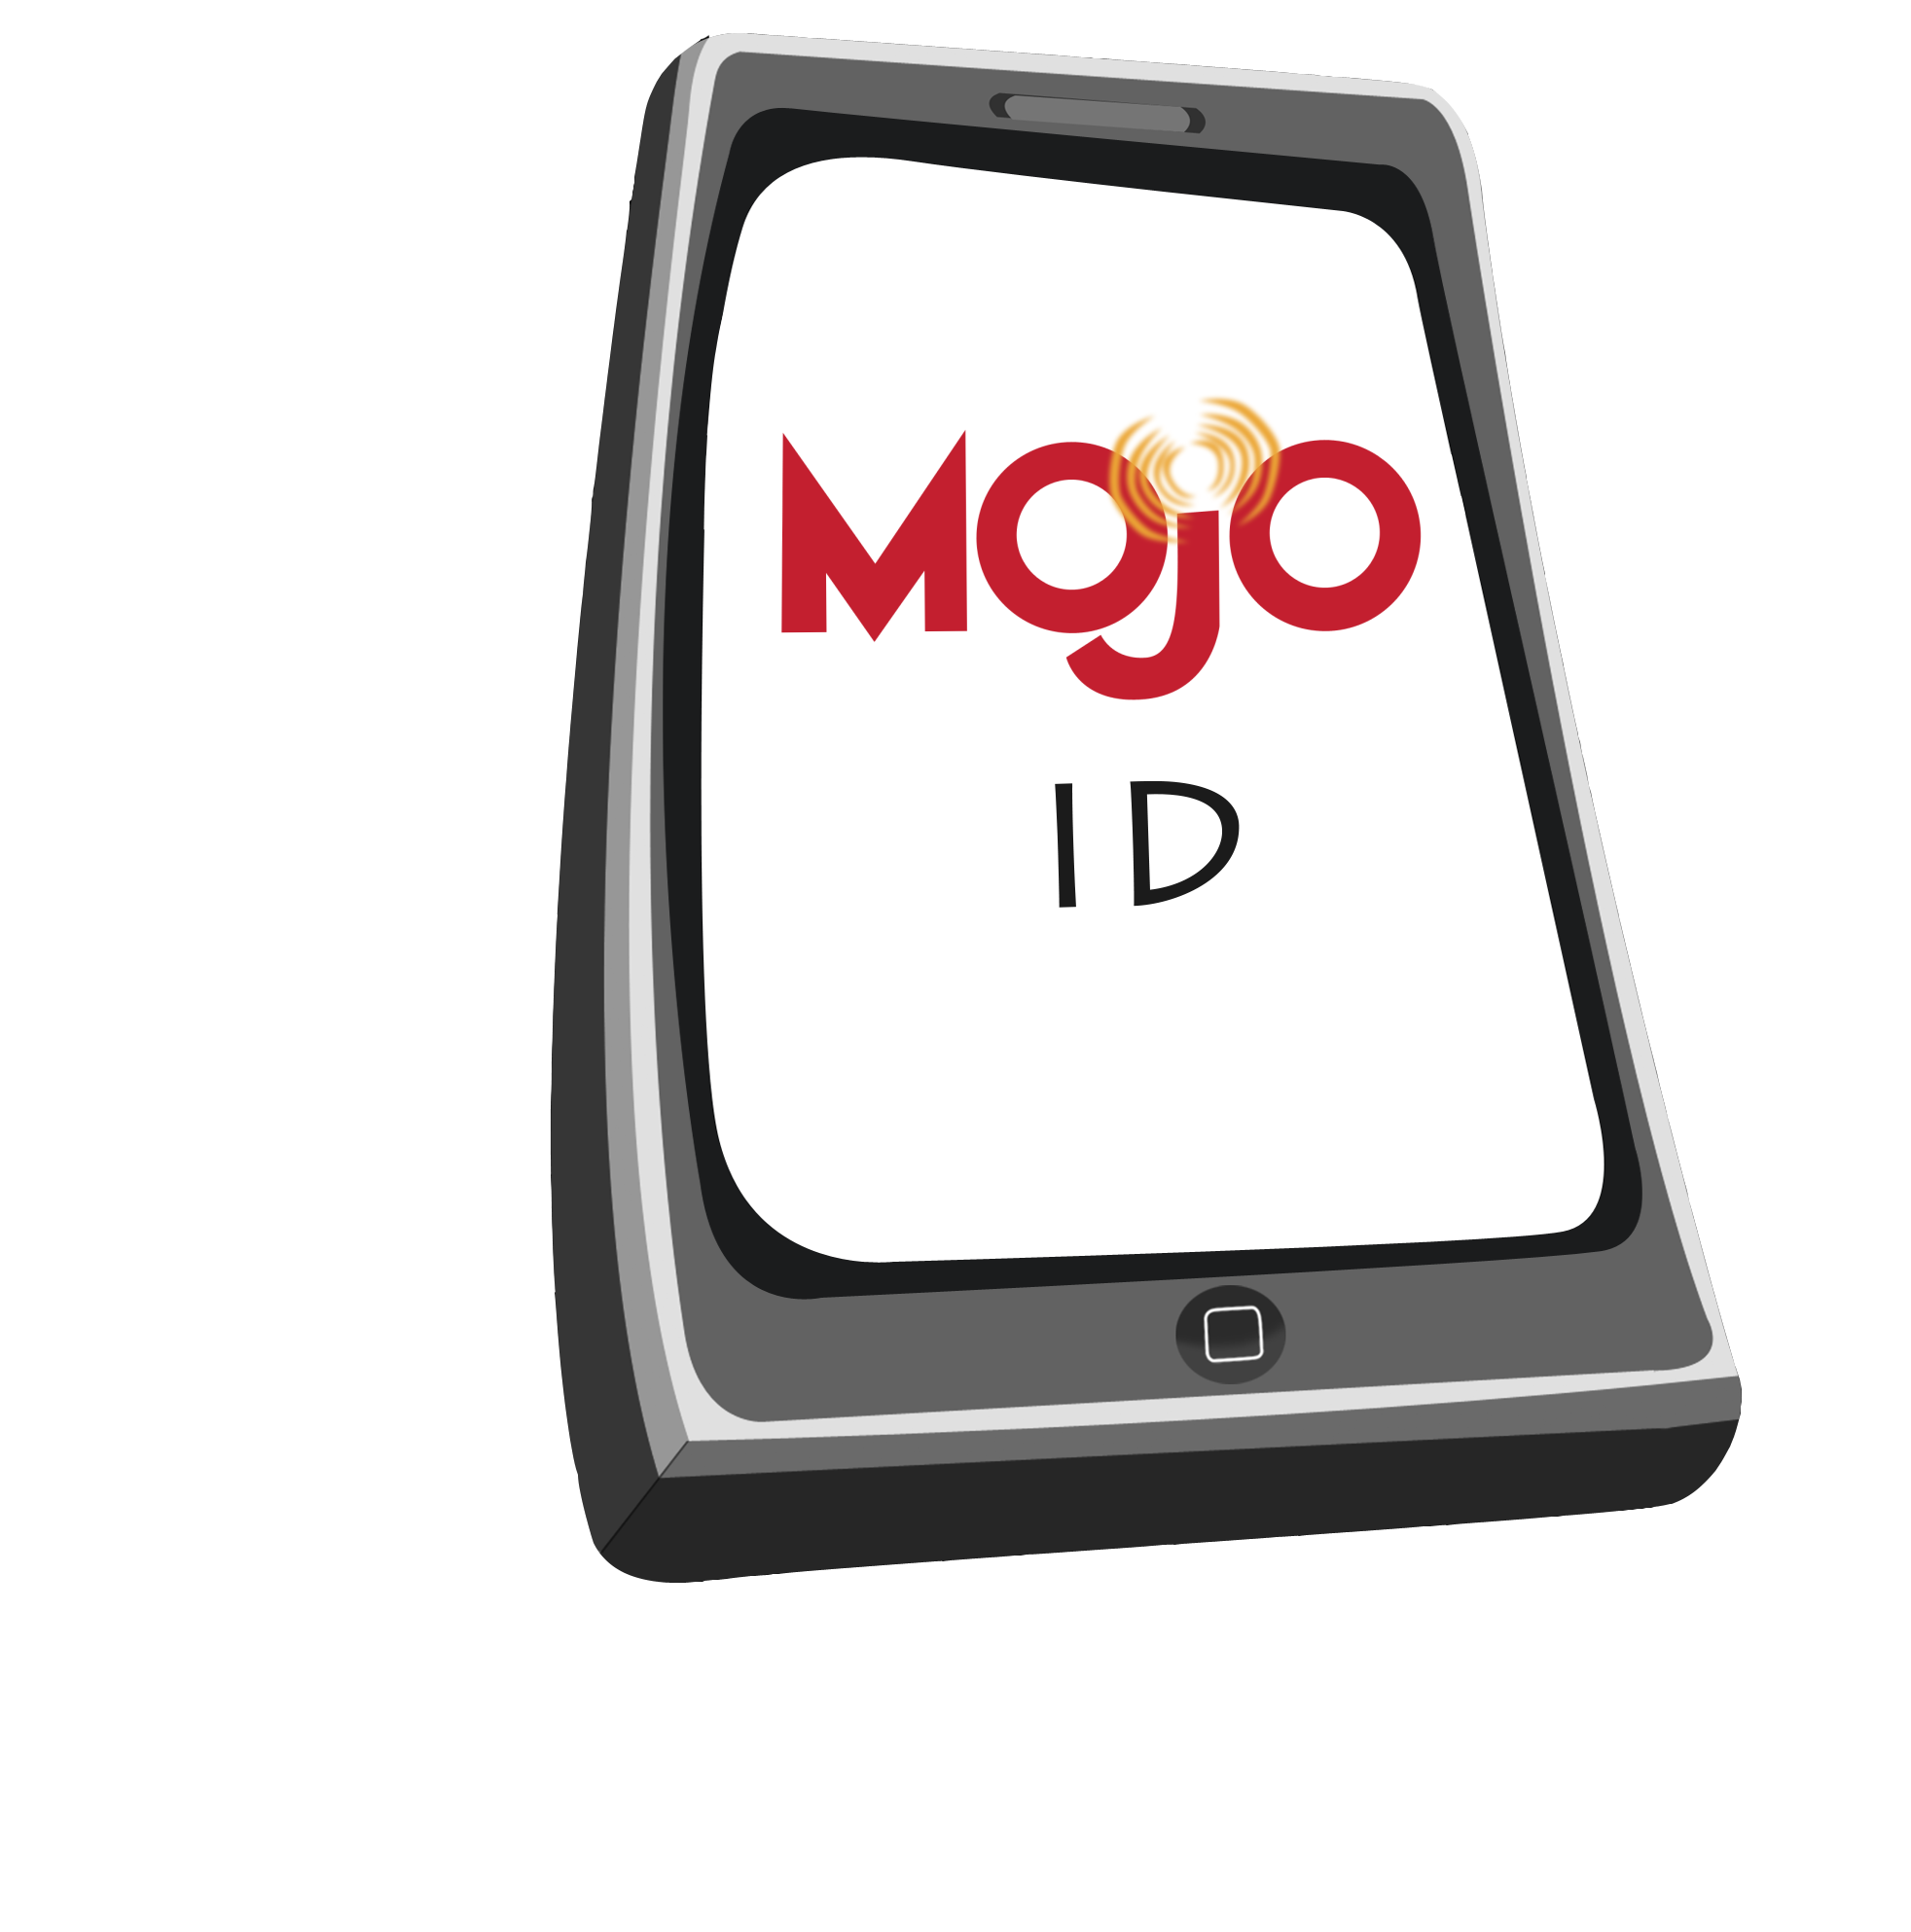 Mojo Dialer features MOJO ID